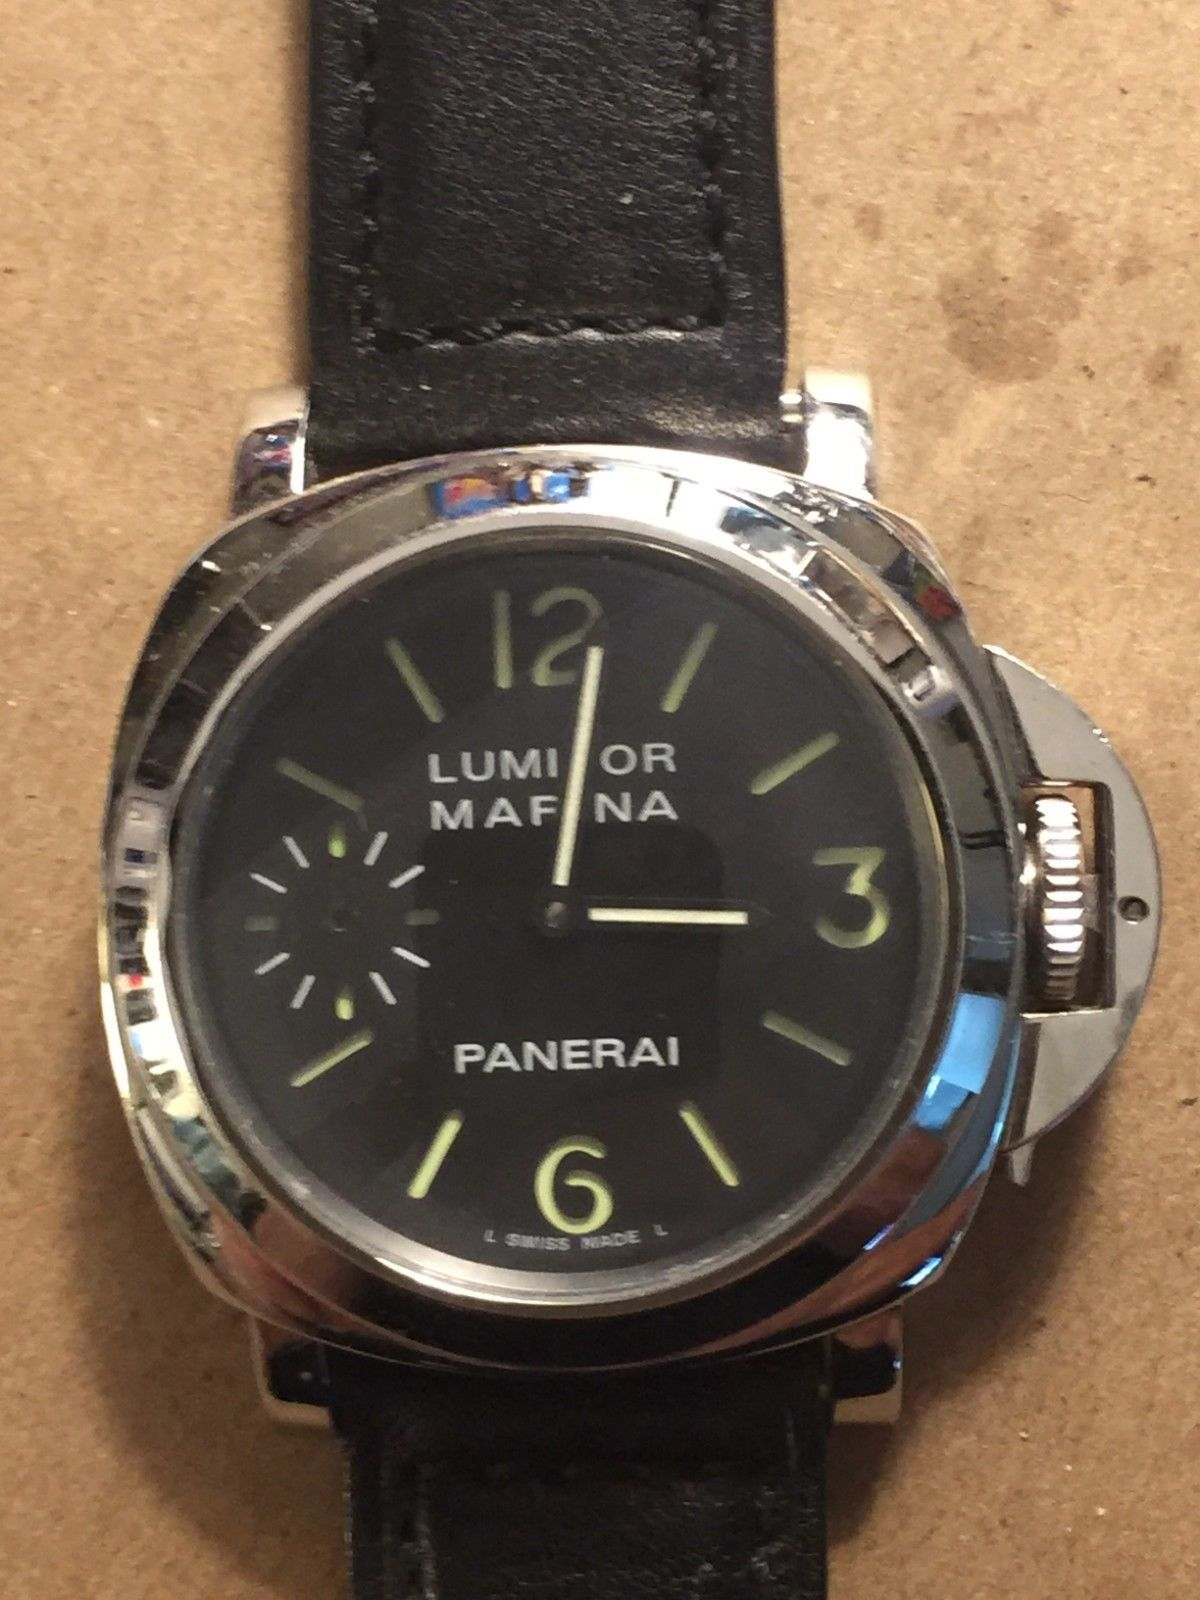 f07ba26d94b Panerai Luminor Marina Men s Watch Automatic OP6567 H0035 2000 ...